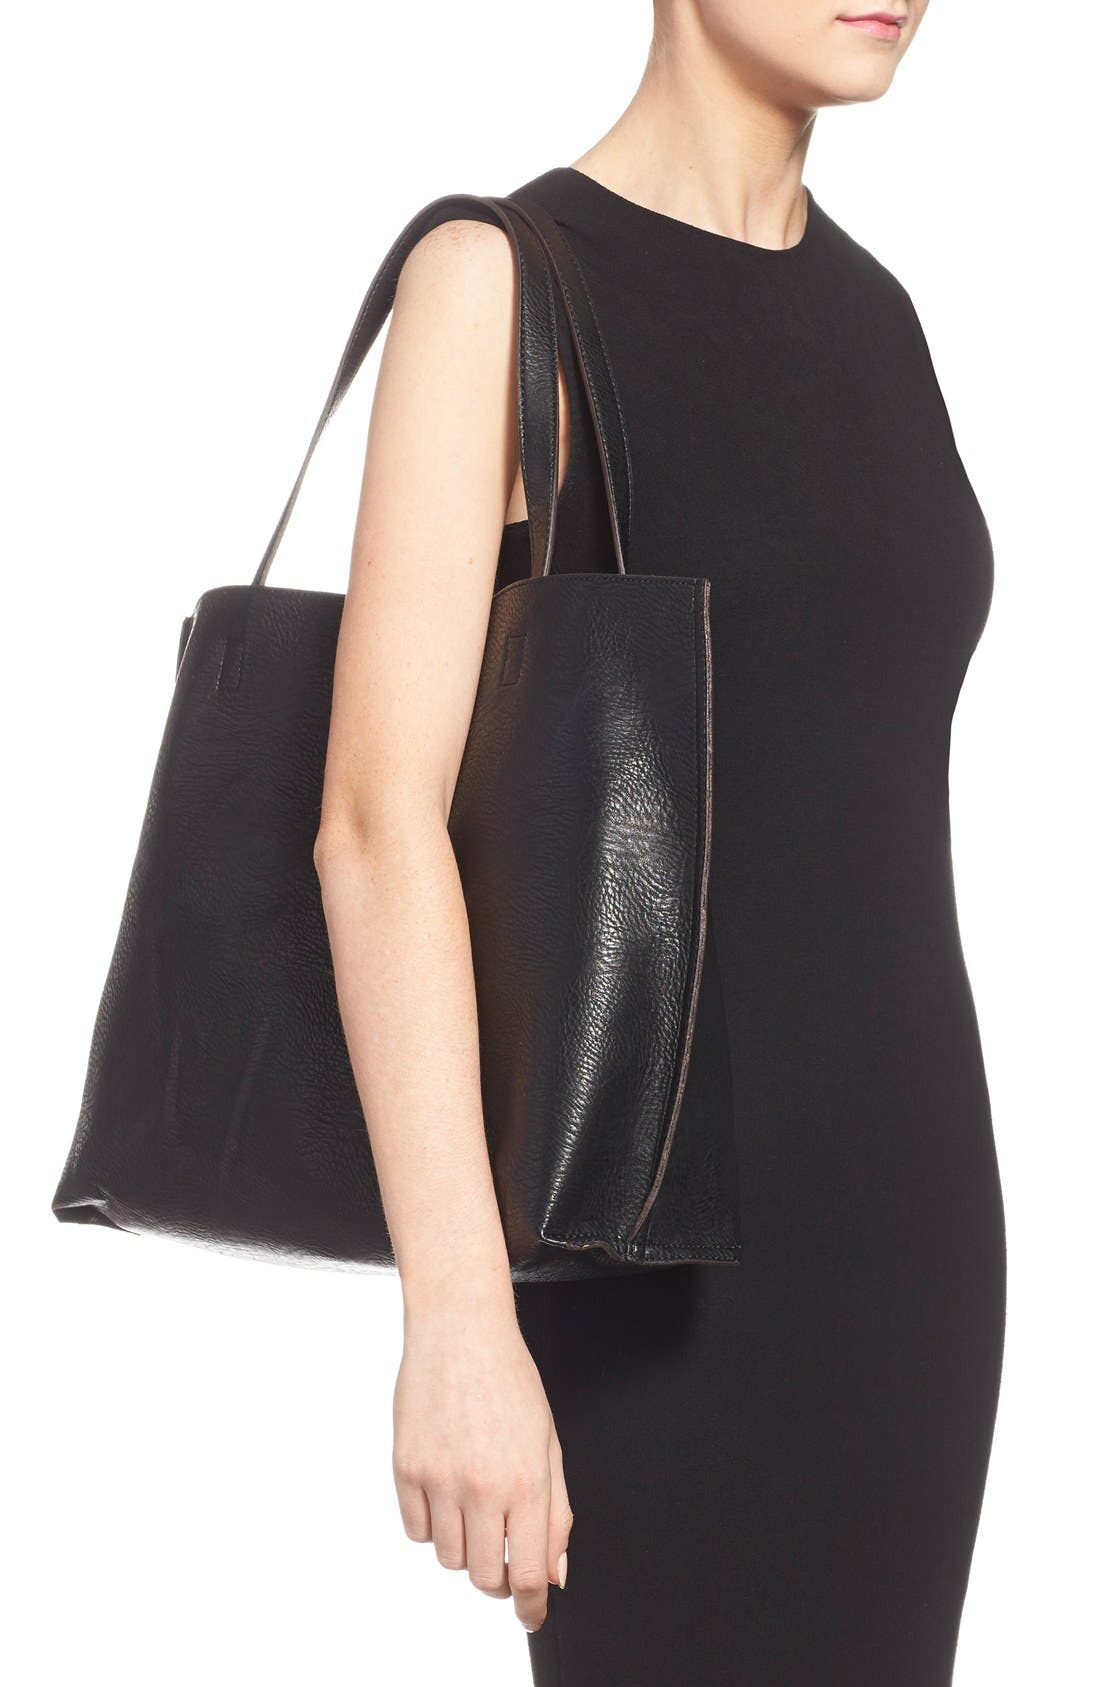 STREET LEVEL, Reversible Faux Leather Tote, Alternate thumbnail 3, color, 004